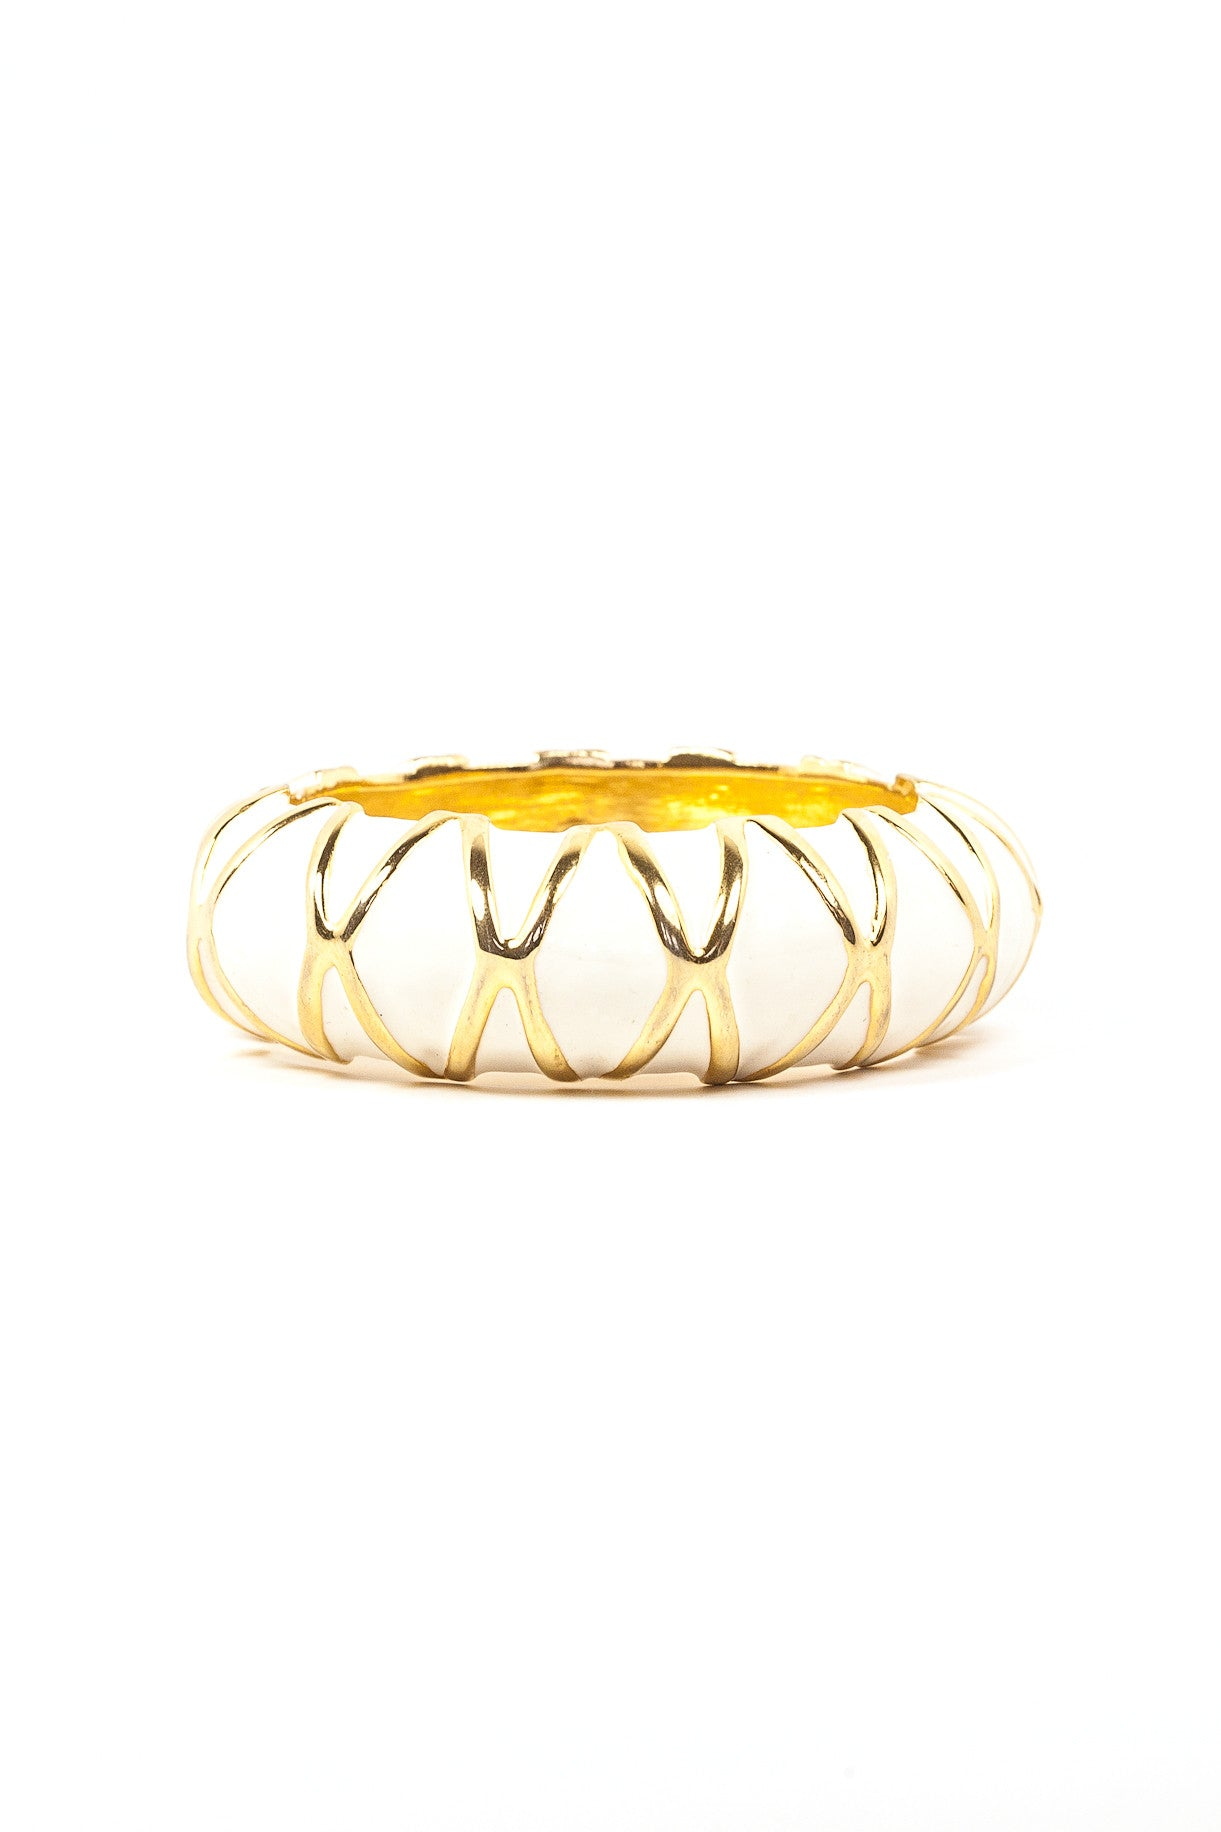 80's__Kenneth Jay Lane__Cream Bangle